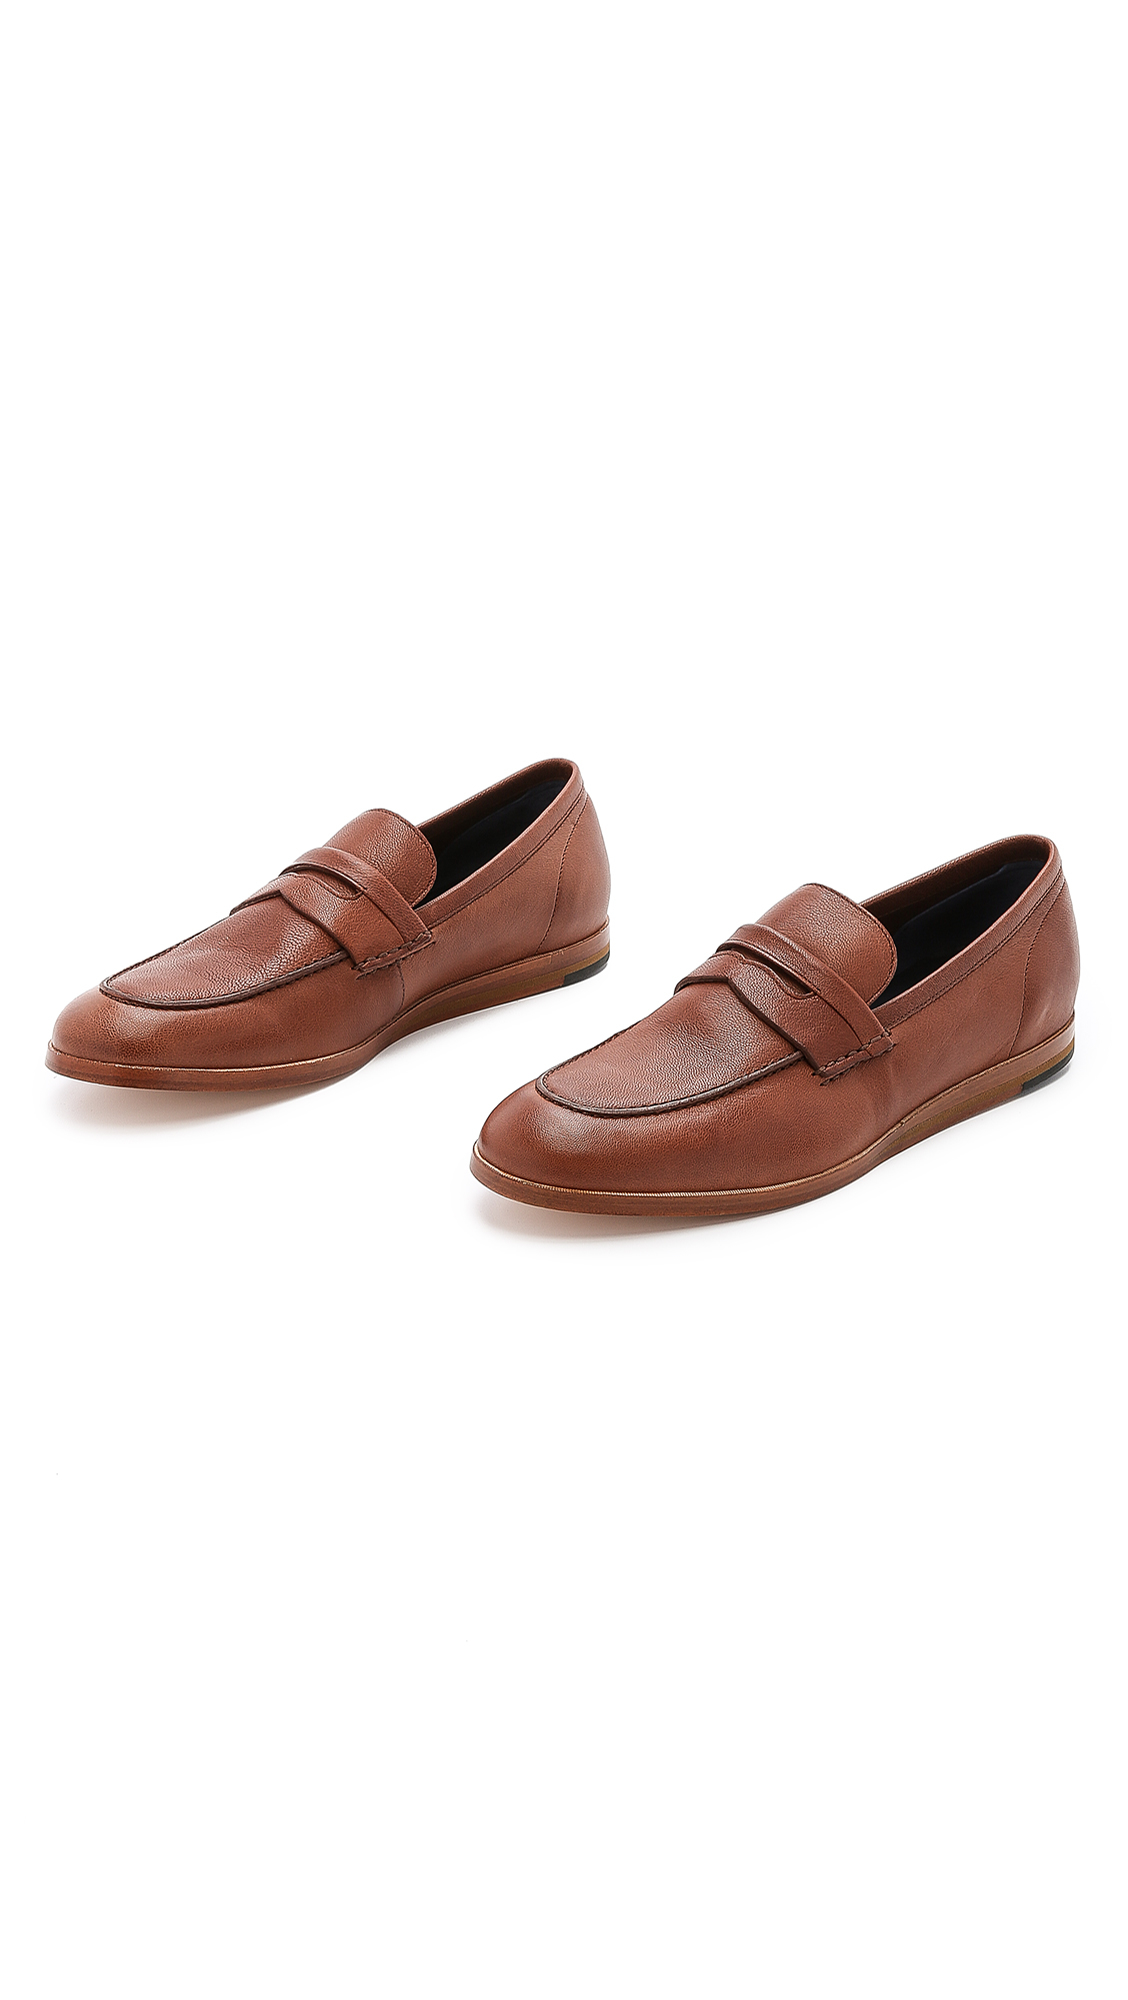 Cole Haan Loafers Shoes Men On Feet